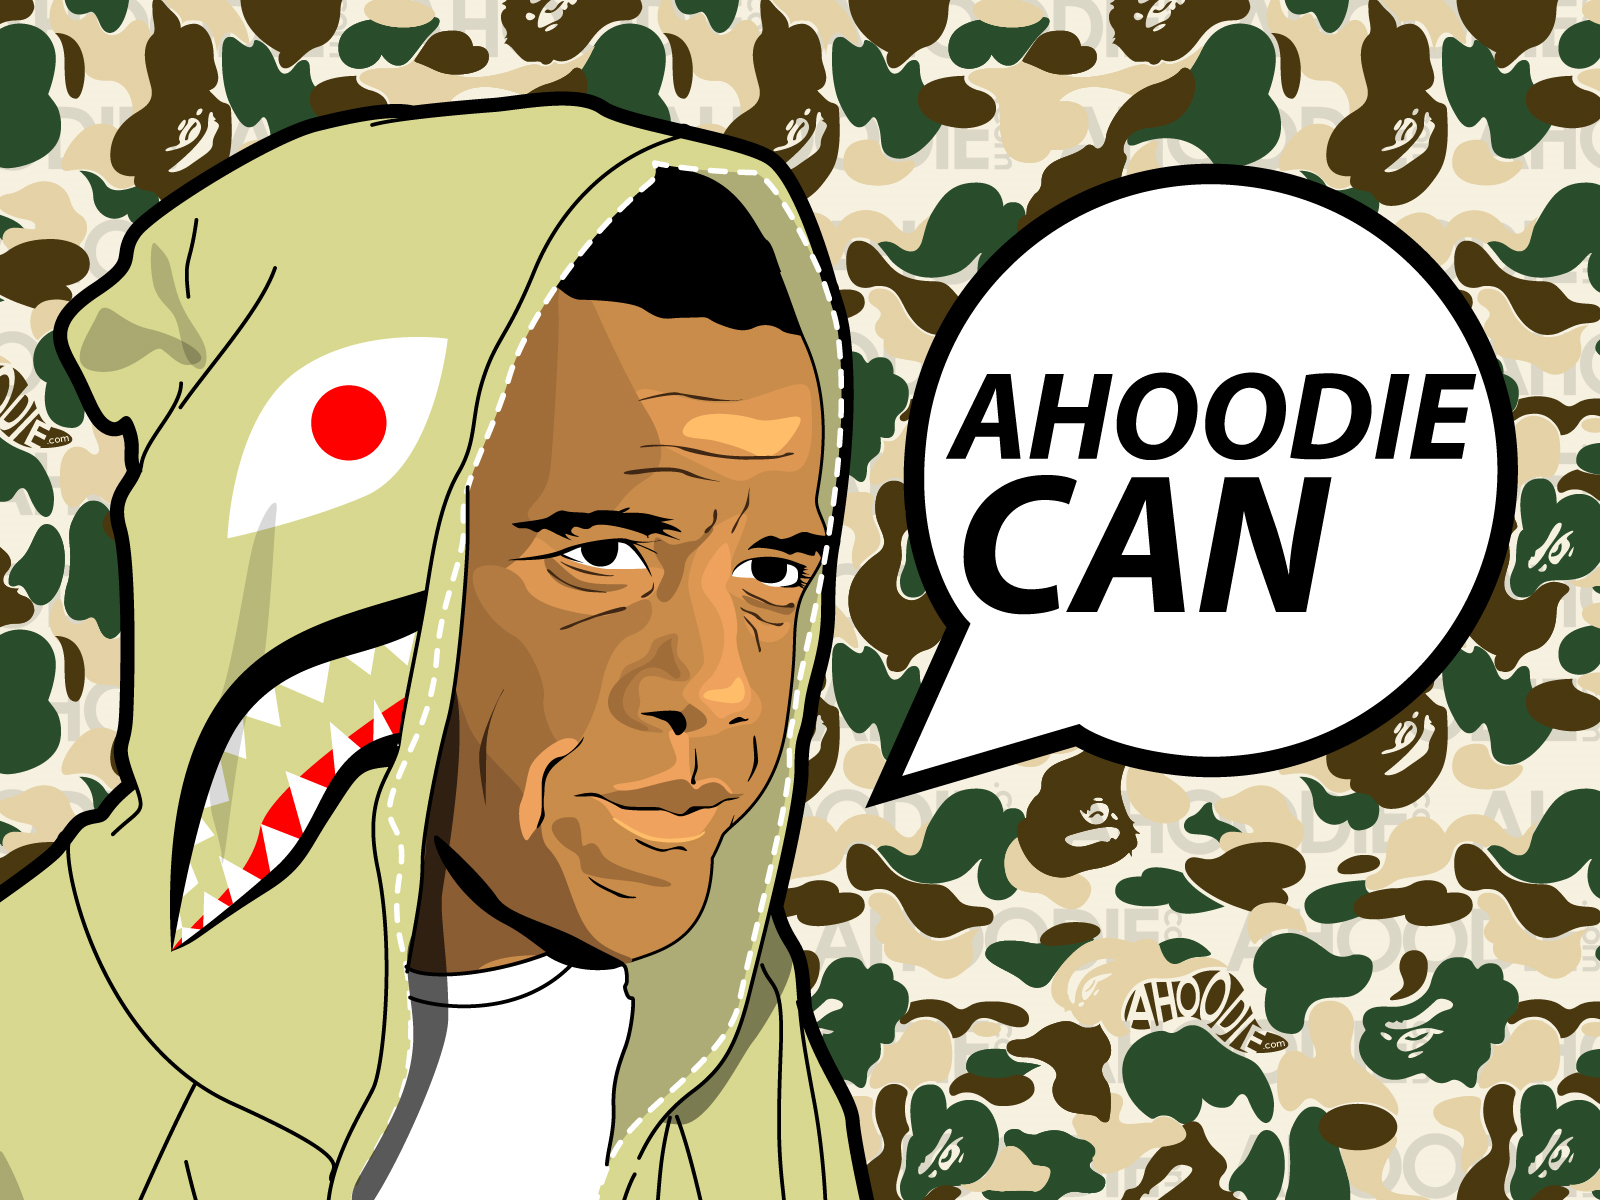 WALLPAPERS: Bape x Obama Desktop Background Wall Paper